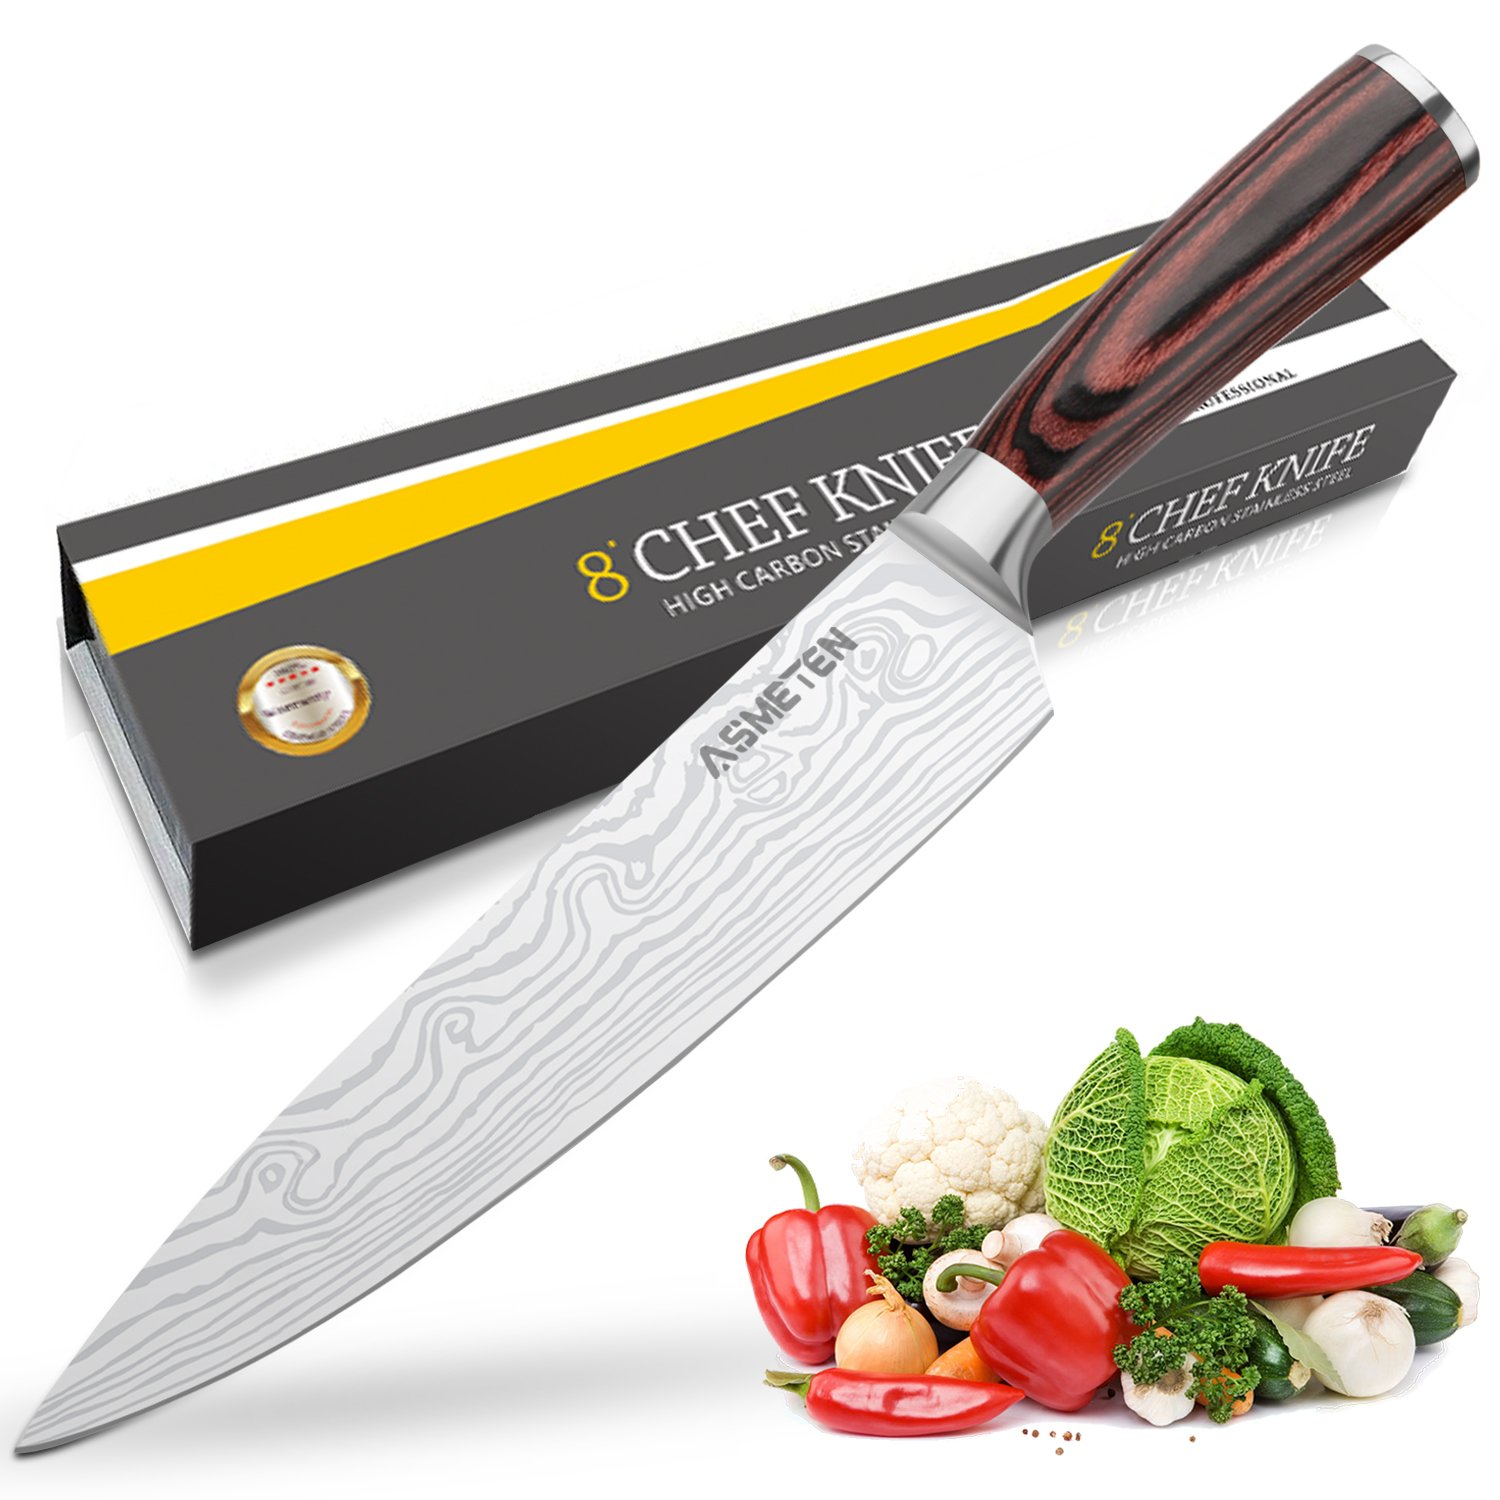 Asmeten Chef Knife,Kitchen Knife, Professional Chefs Knife 8 Inch, High Carbon Stainless Steel, Best Value With Exquisite Packaging, Ultra Sharp Cooking Knife (White)